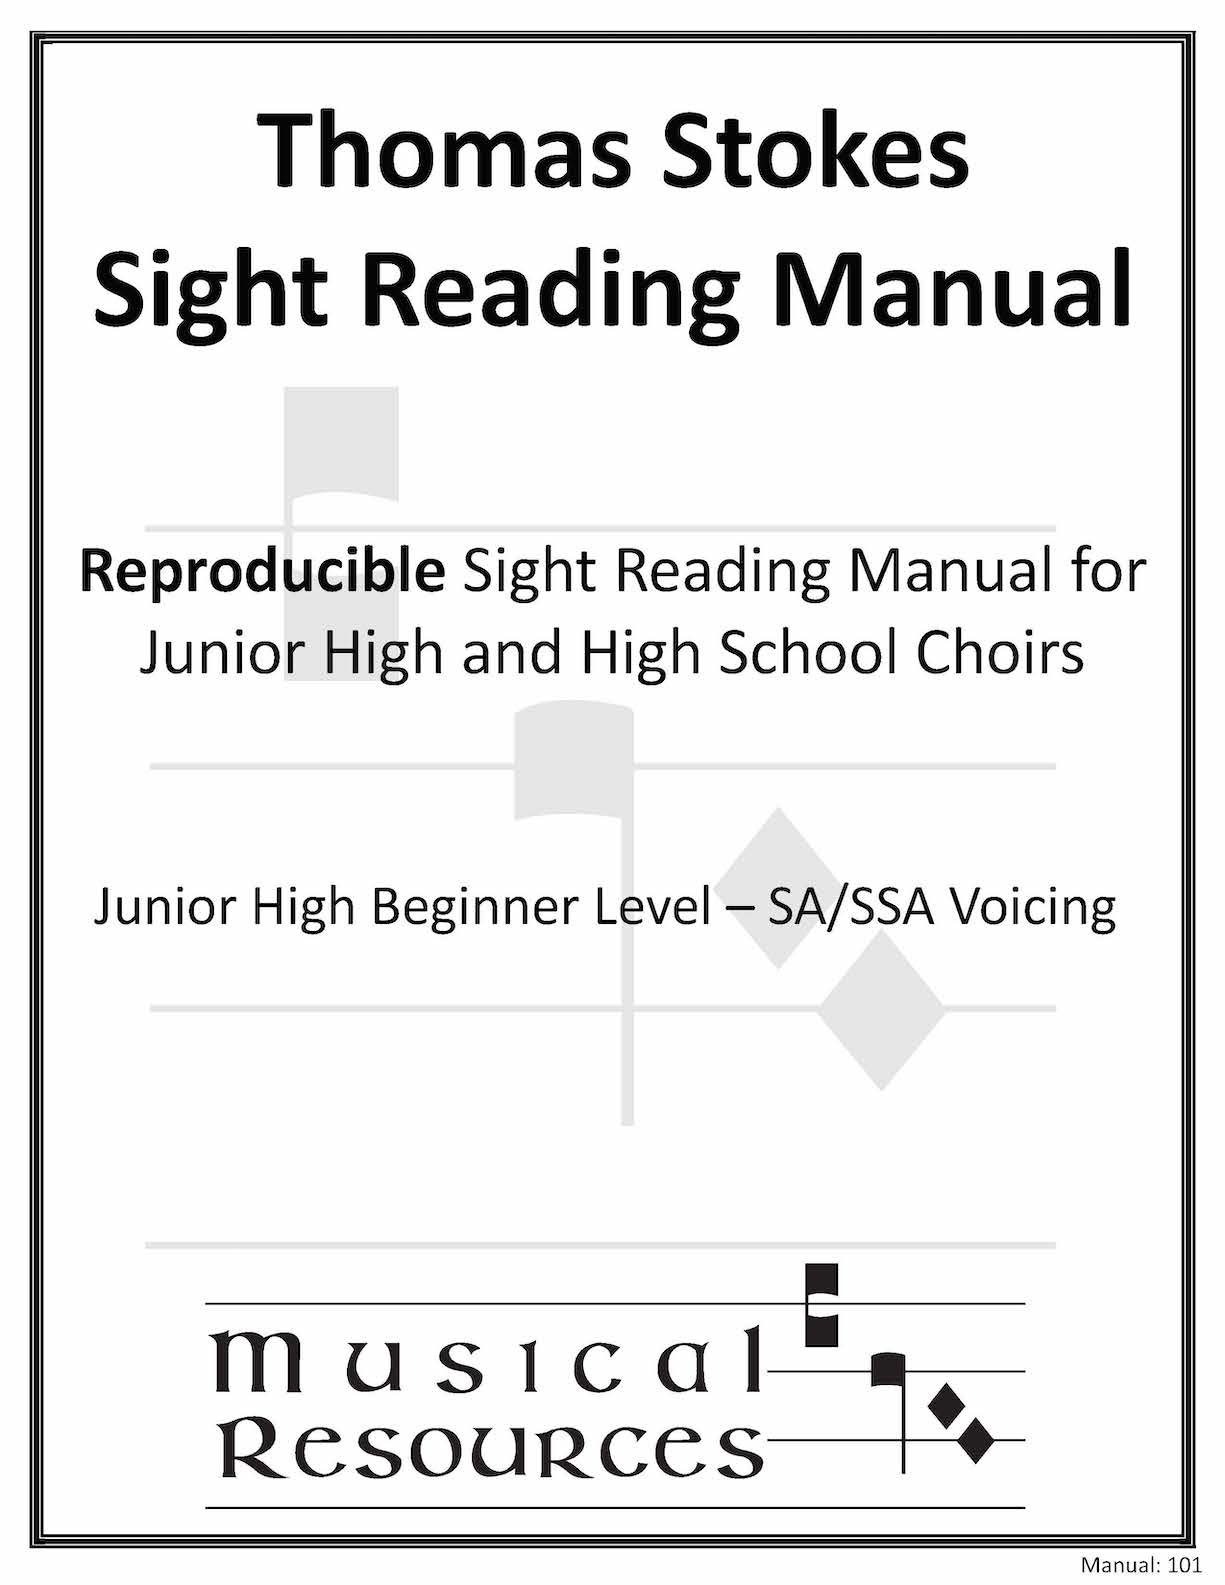 Picture of (Digital) Thomas Stokes Sightreading Manual #101 - SA/SSA Junior High Beginner